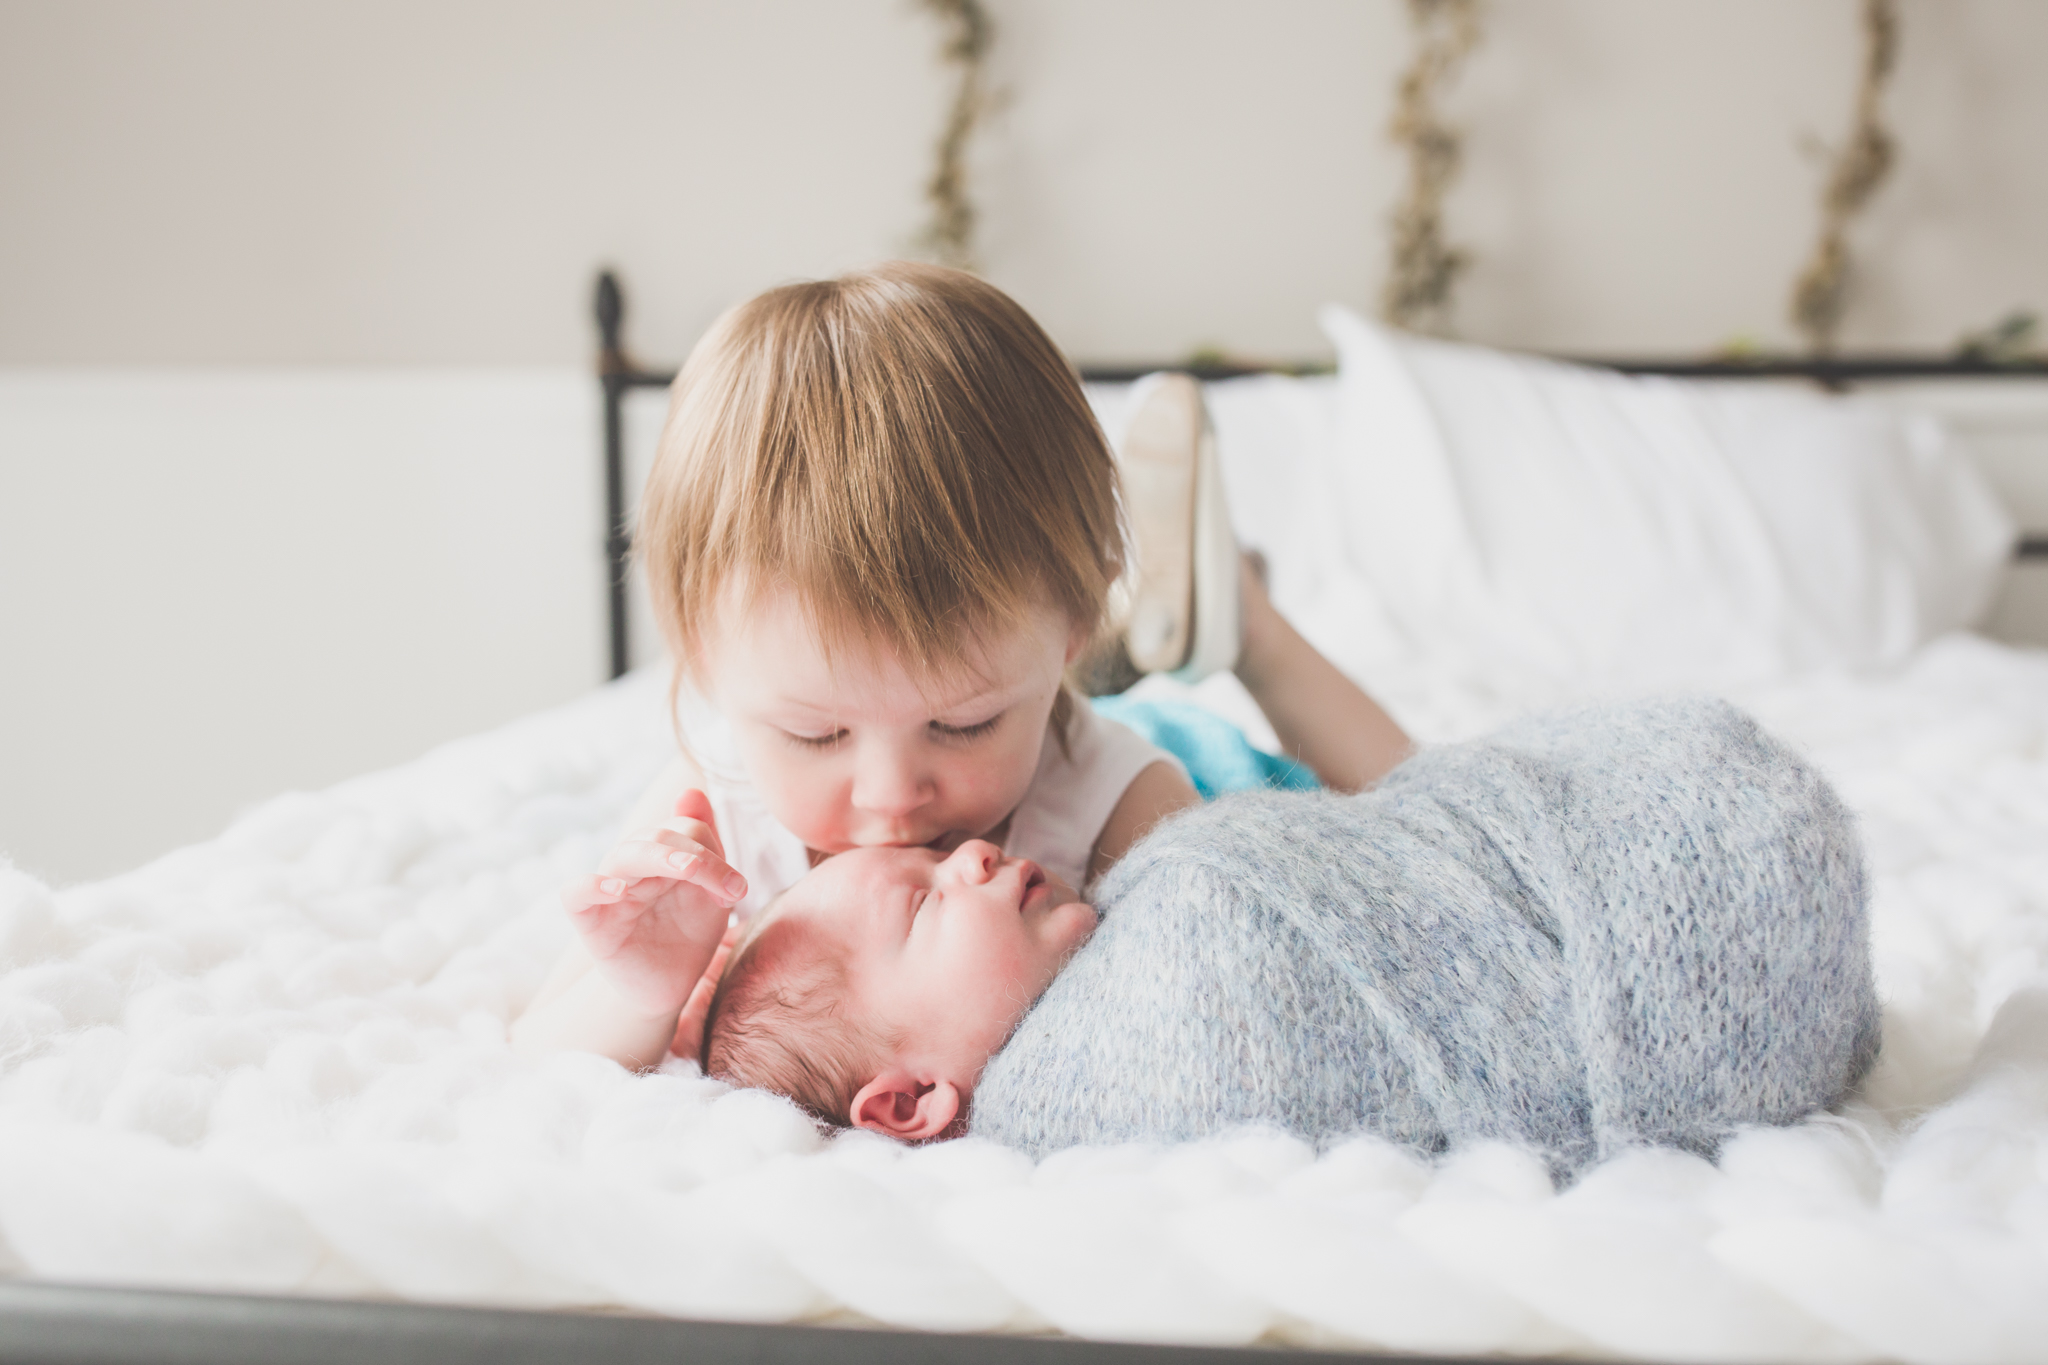 Sibling photos Newborn session photographer lifestyle studio - Cara Peterson Photography Rockford IL-4-4.jpg